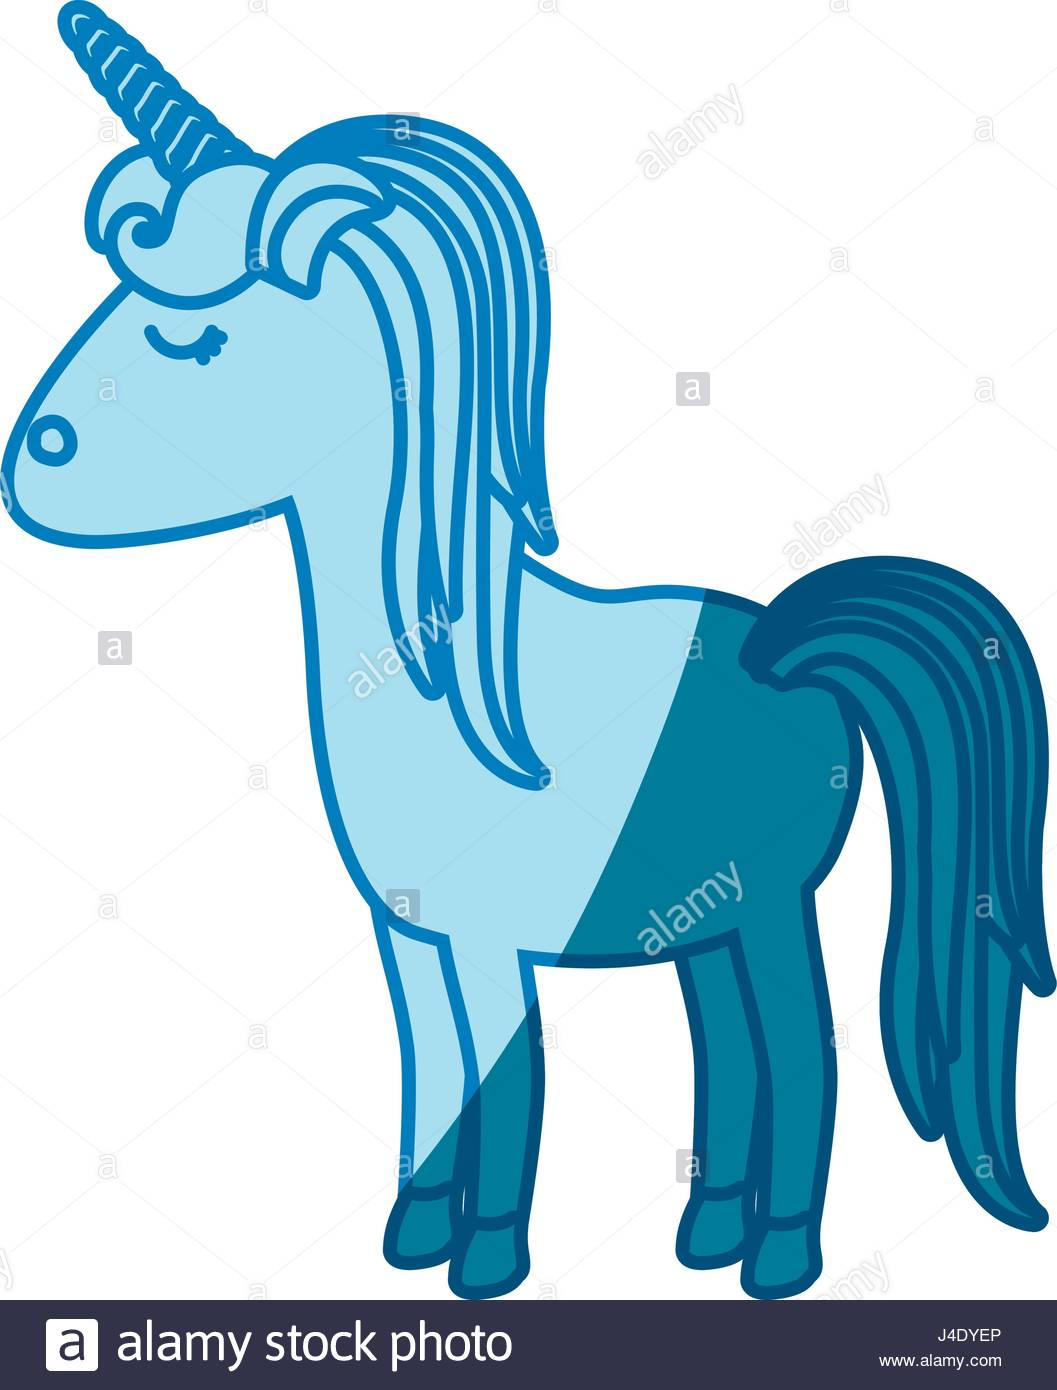 1057x1390 Blue Silhouette Of Cartoon Unicorn Standing With Closed Eyes